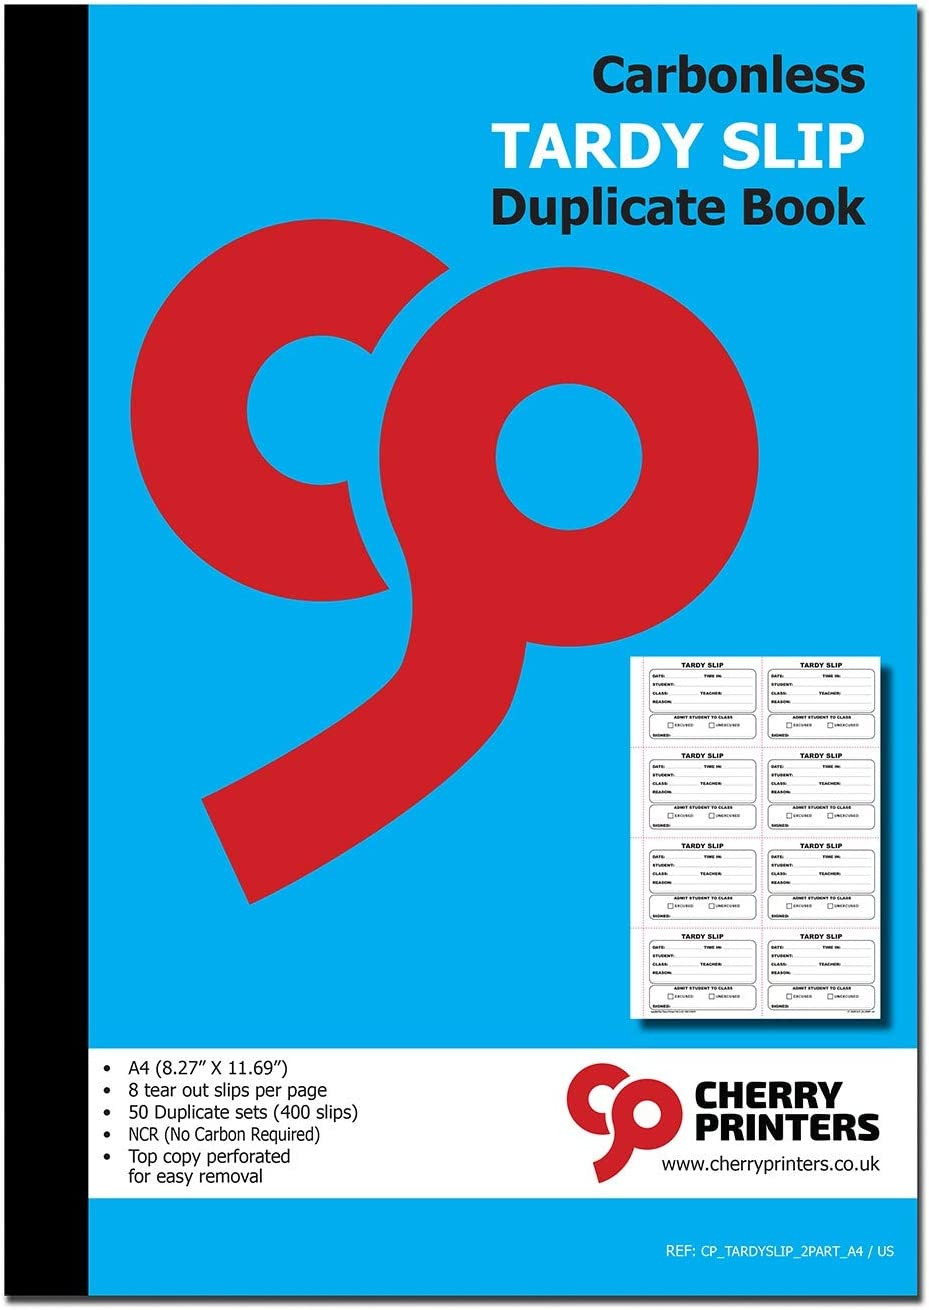 Cherry Easy Removal Tardy Slip Book with Carbonless Copies / 400 (3.89 x 2.92 Inches) Slips Per Book